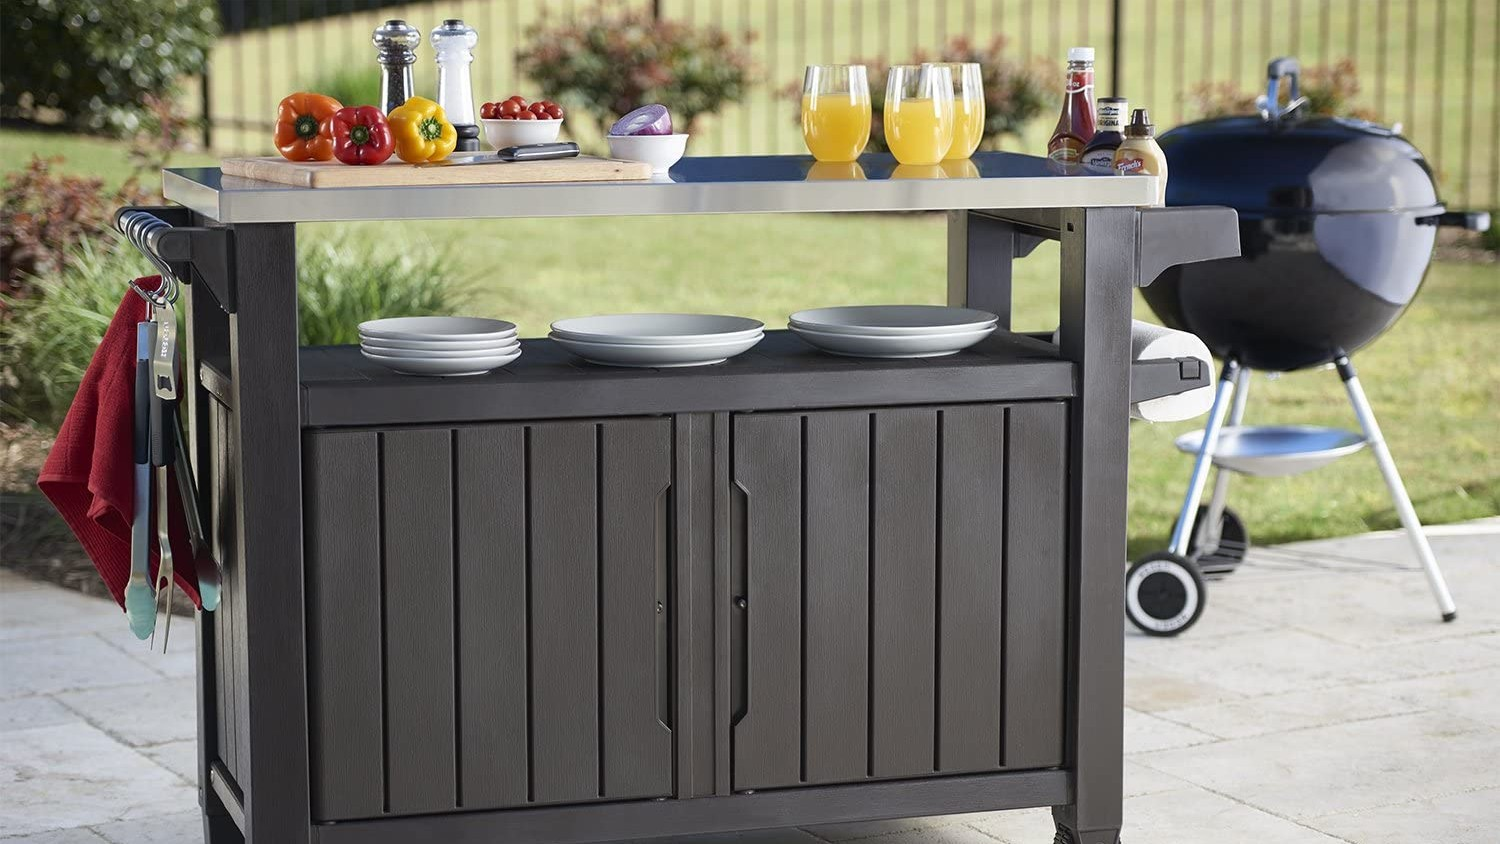 The Best Outdoor Kitchen Islands That You Can Buy On Amazon Sheknows